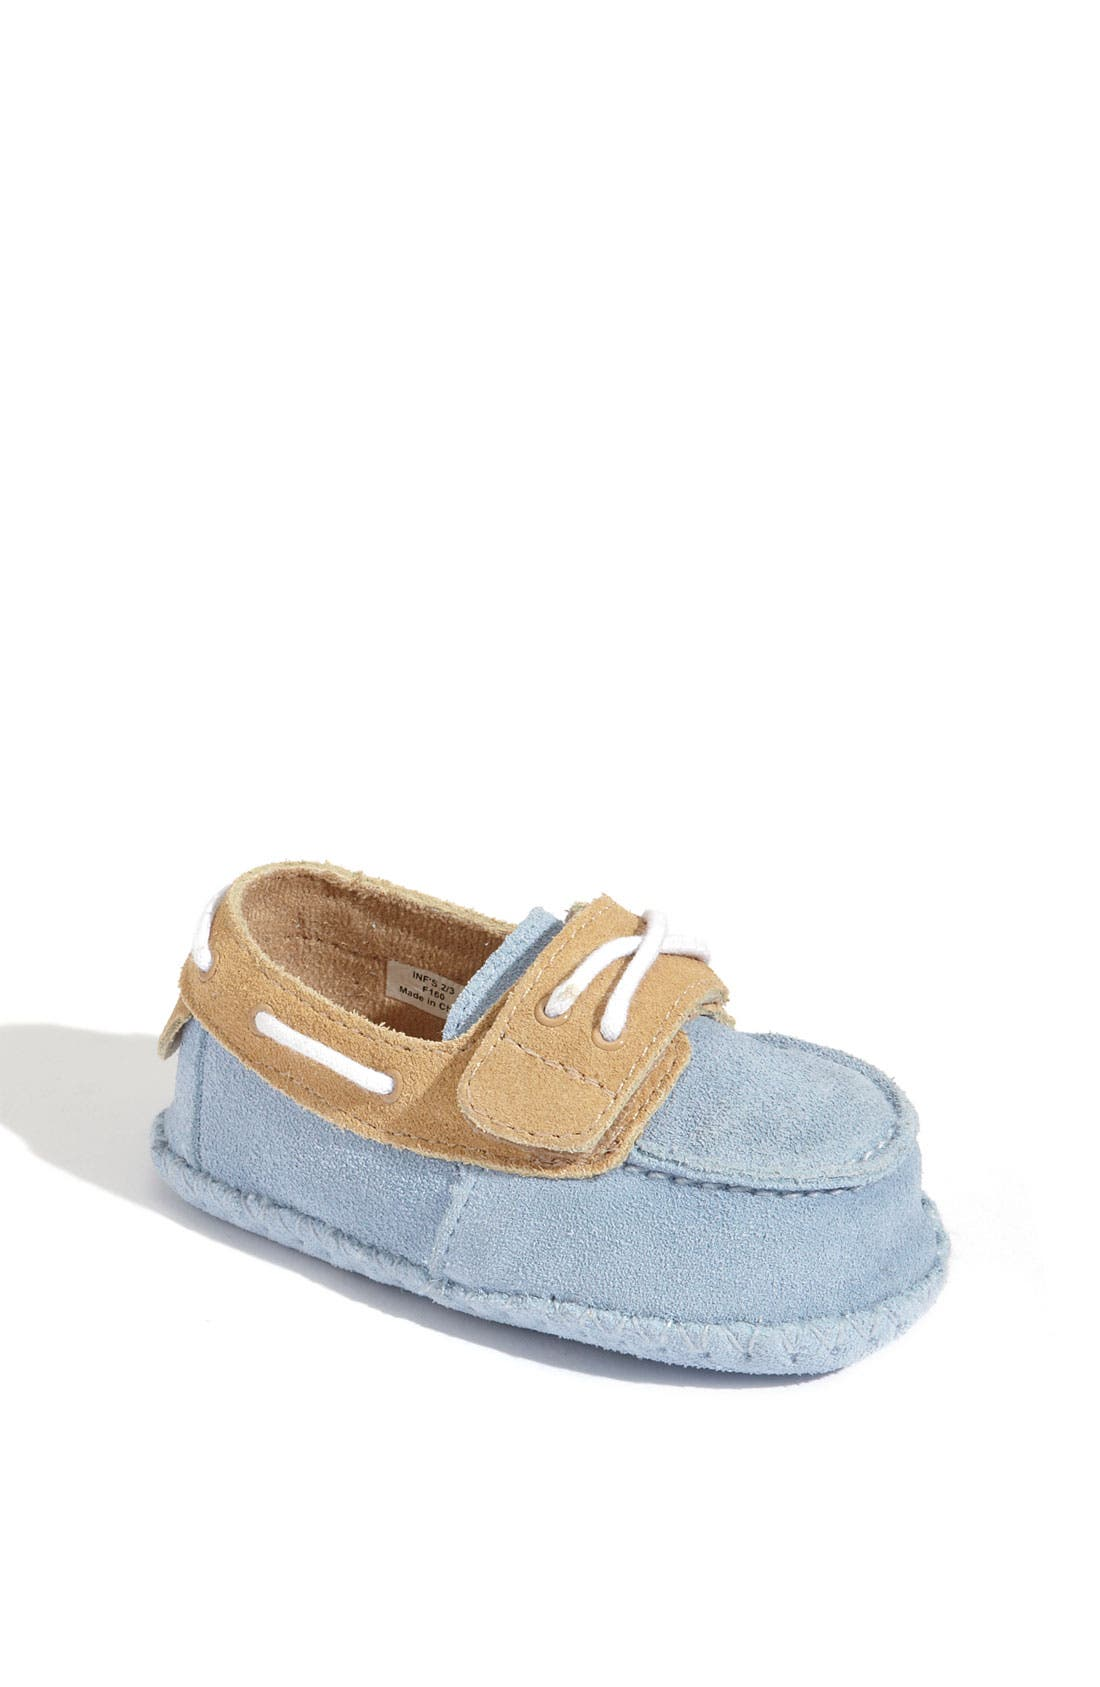 Australia 'Zach' Slip-On,                         Main,                         color, Blue/ Sand